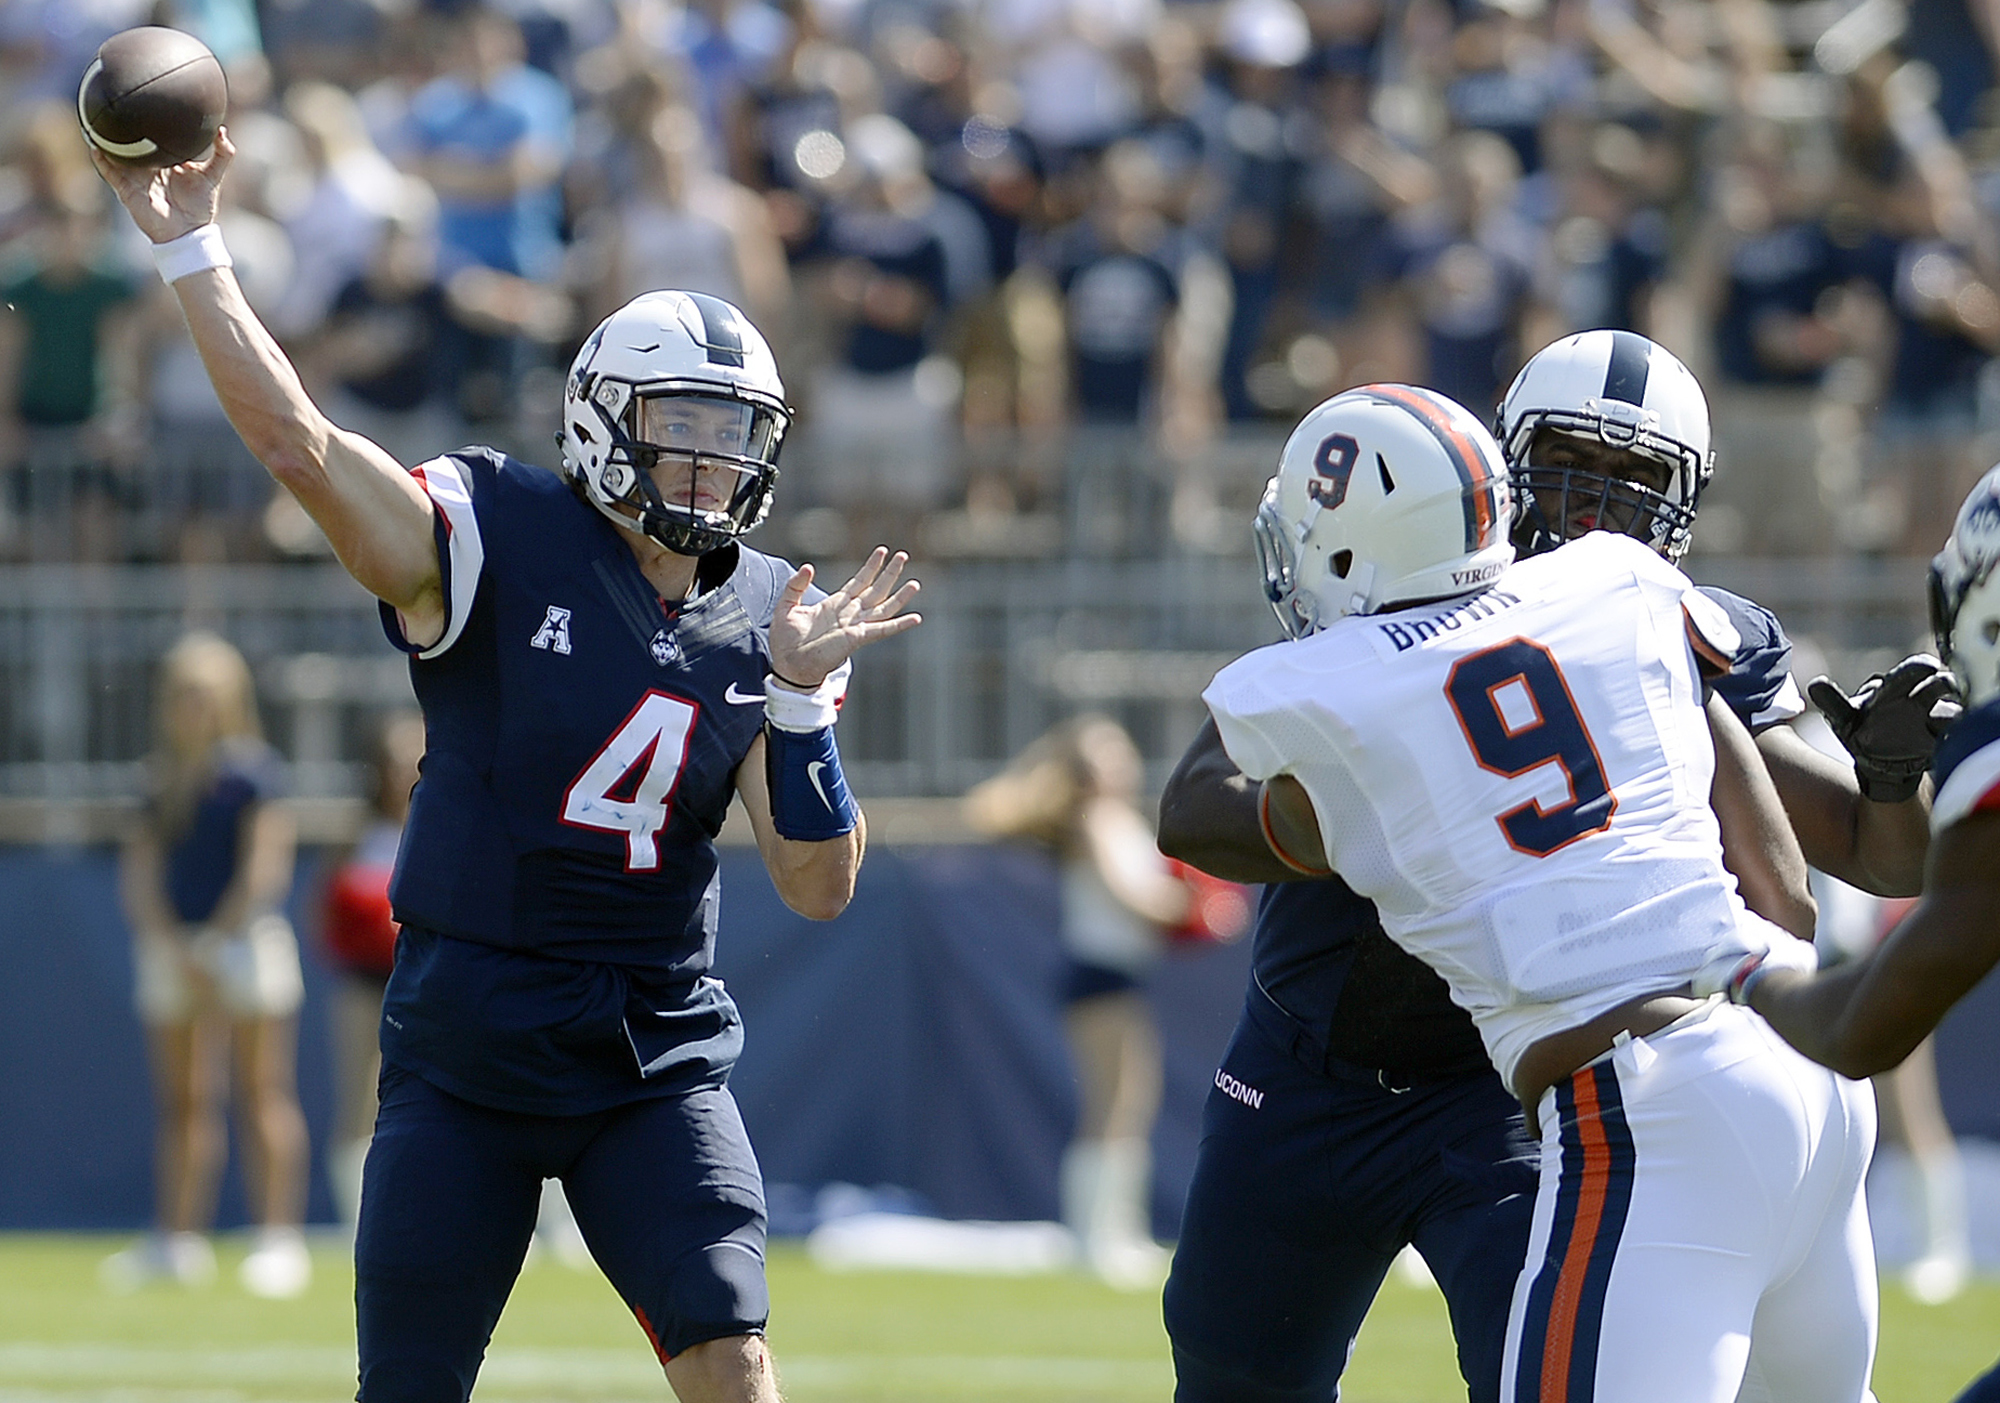 Connecticut quarterback Bryant Shirreffs (4) passes against the rush by Virginia's Andrew Brown (9) in the first half of an NCAA college football game Saturday, Sept. 17, 2016, in East Hartford, Conn. (AP Photo/Jessica Hill)